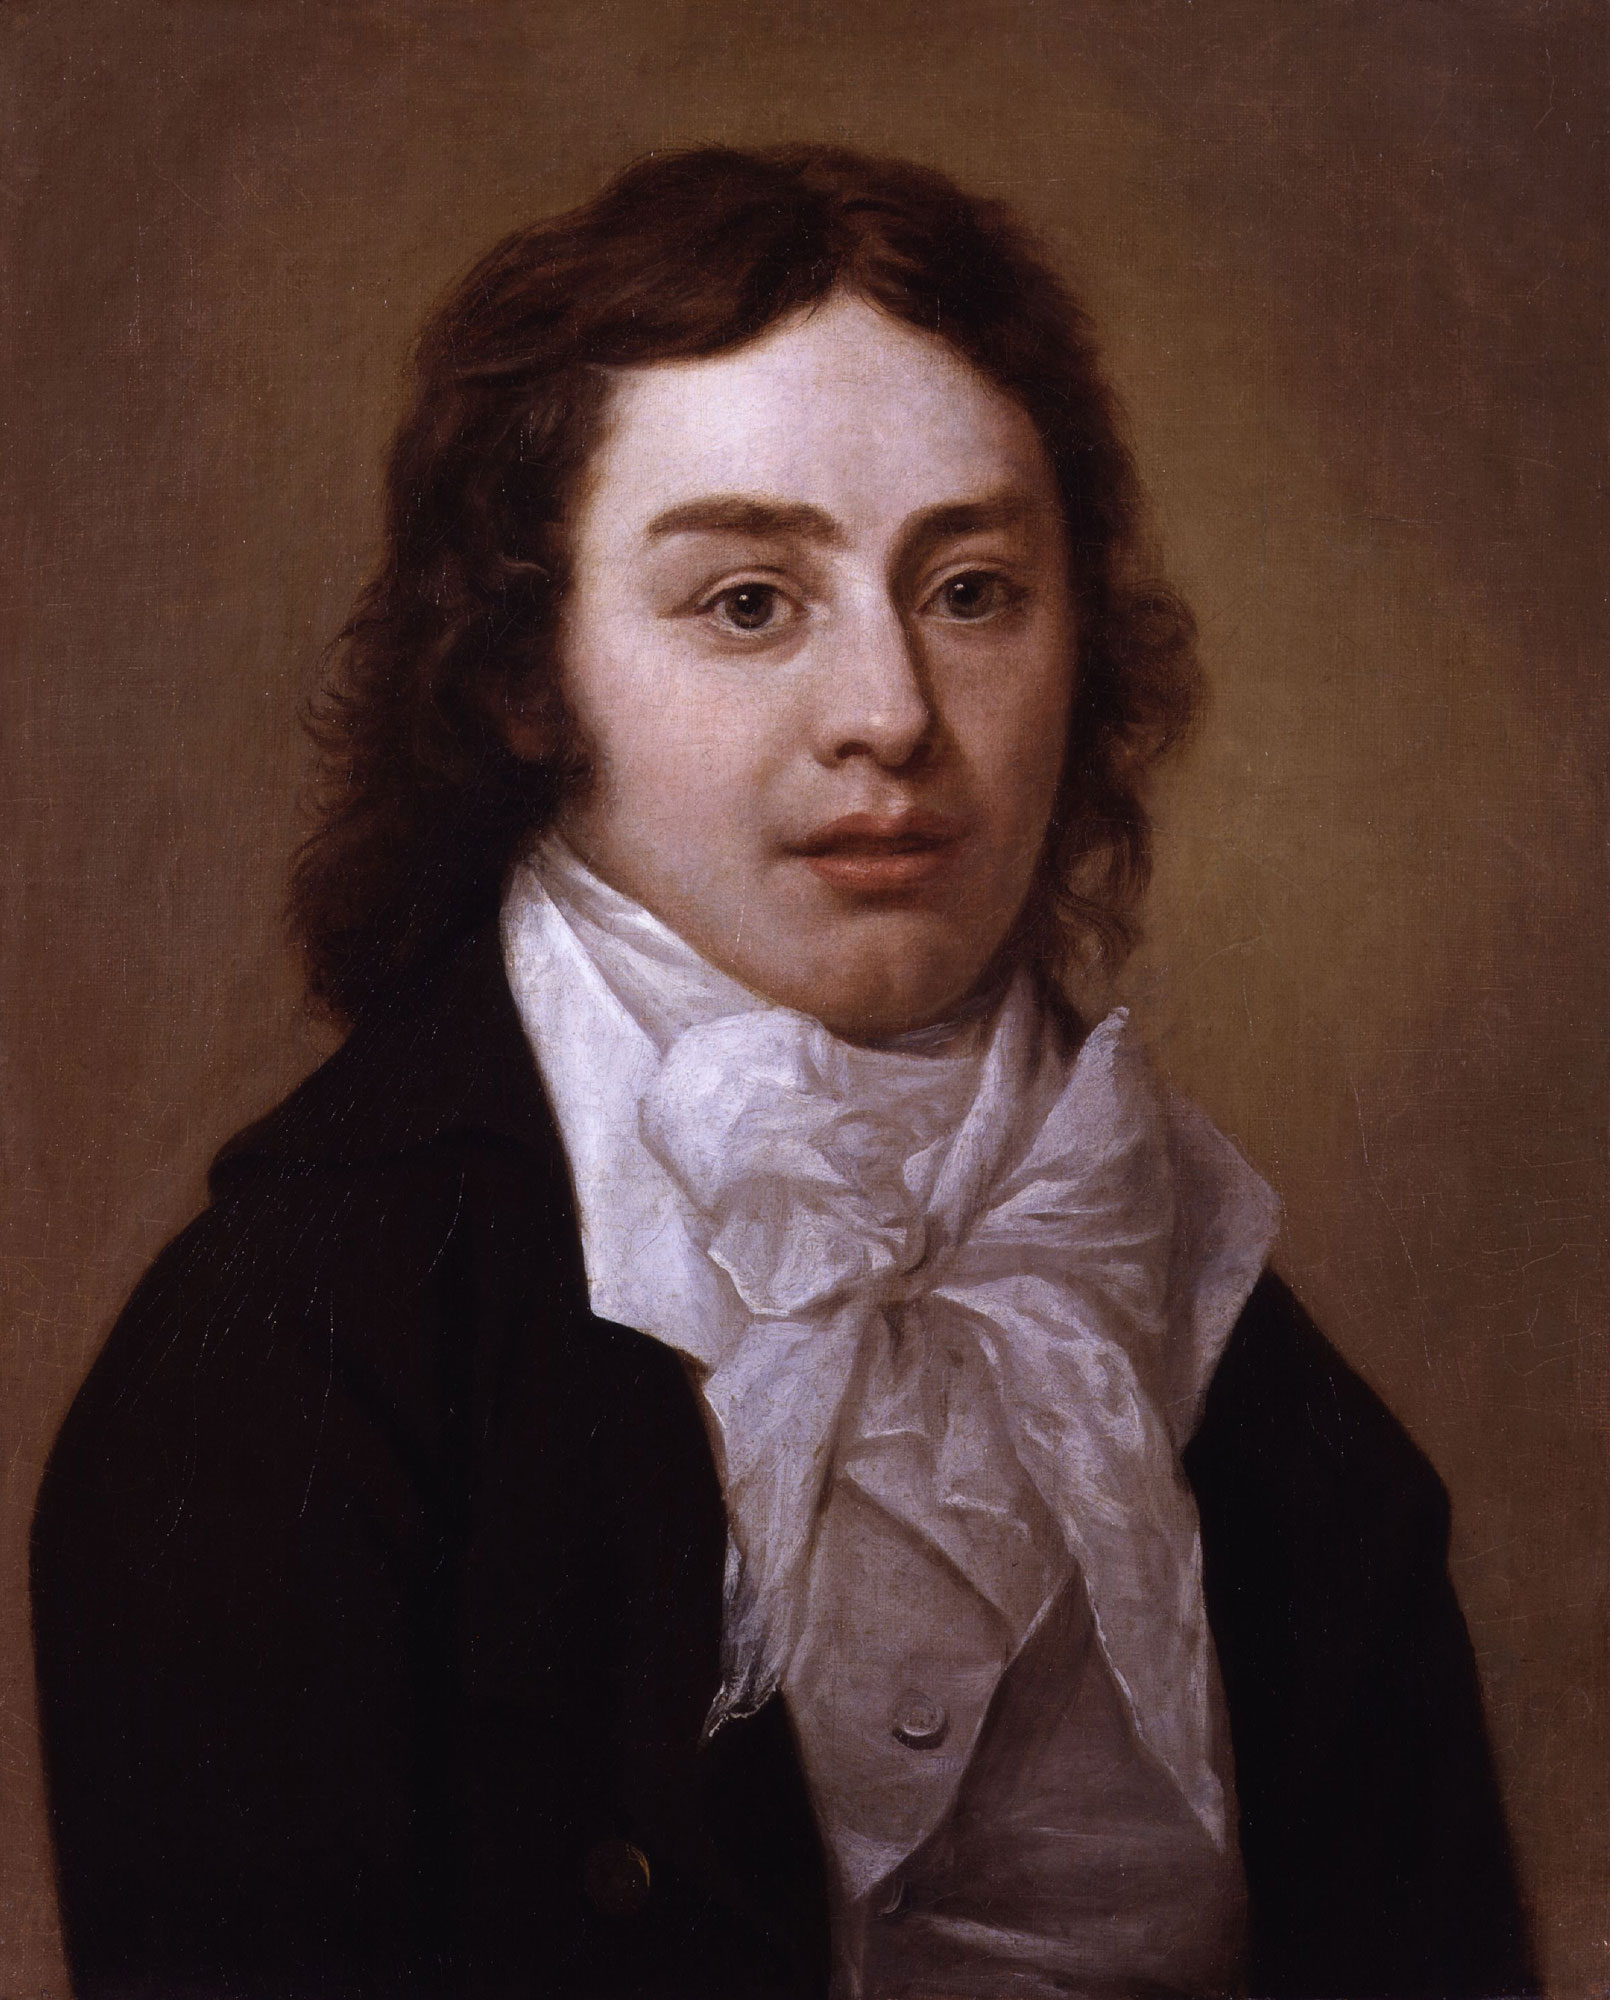 Samuel Taylor Coleridge, author of 'Kubla Khan' and 'Christabel'. Portrait by Peter Vandyke © National Portrait Gallery, London.